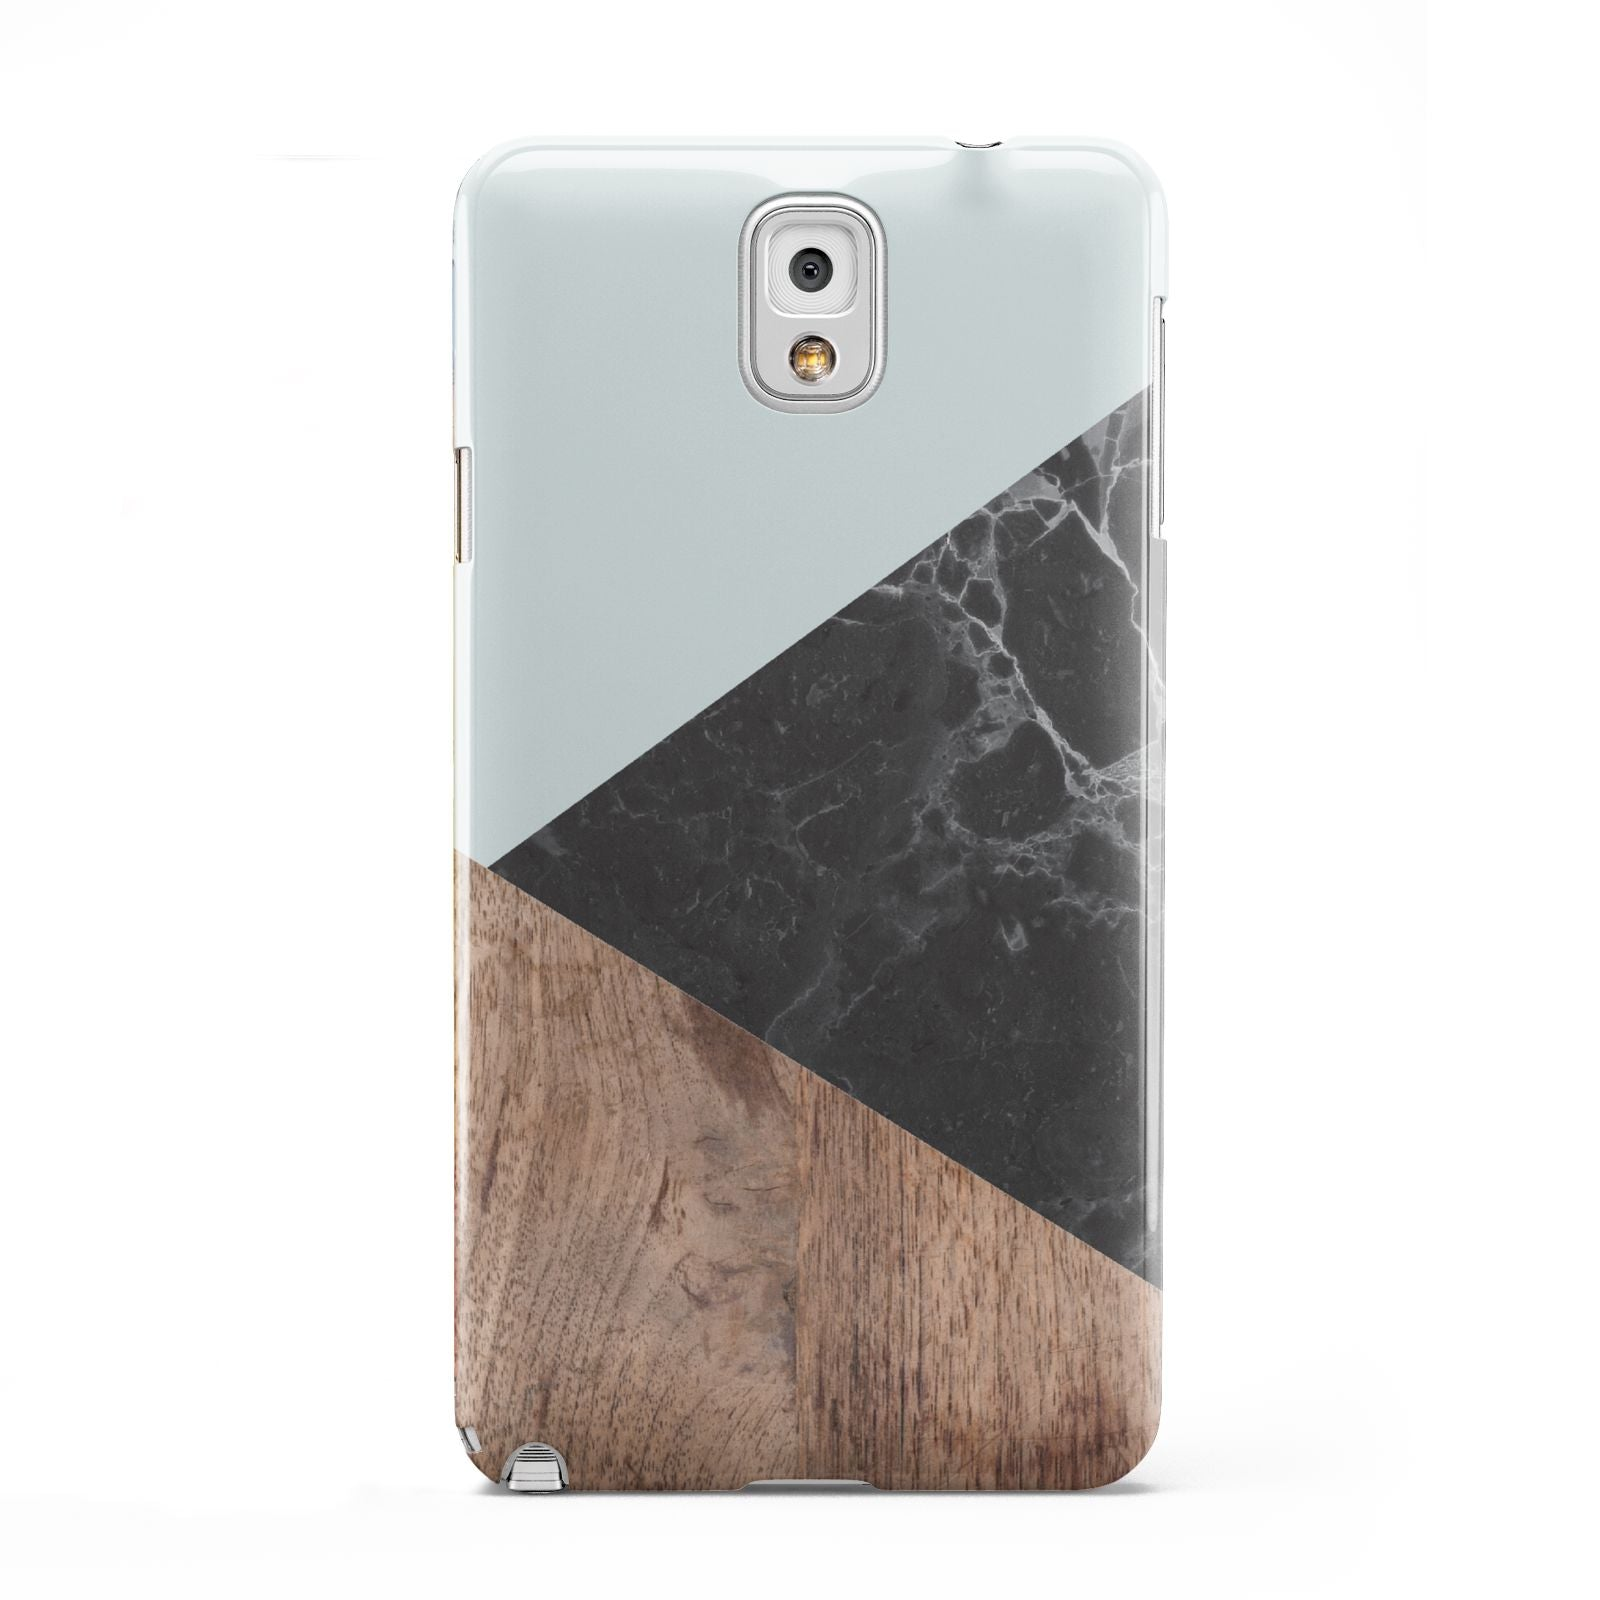 Marble Wood Geometric 2 Samsung Galaxy Note 3 Case